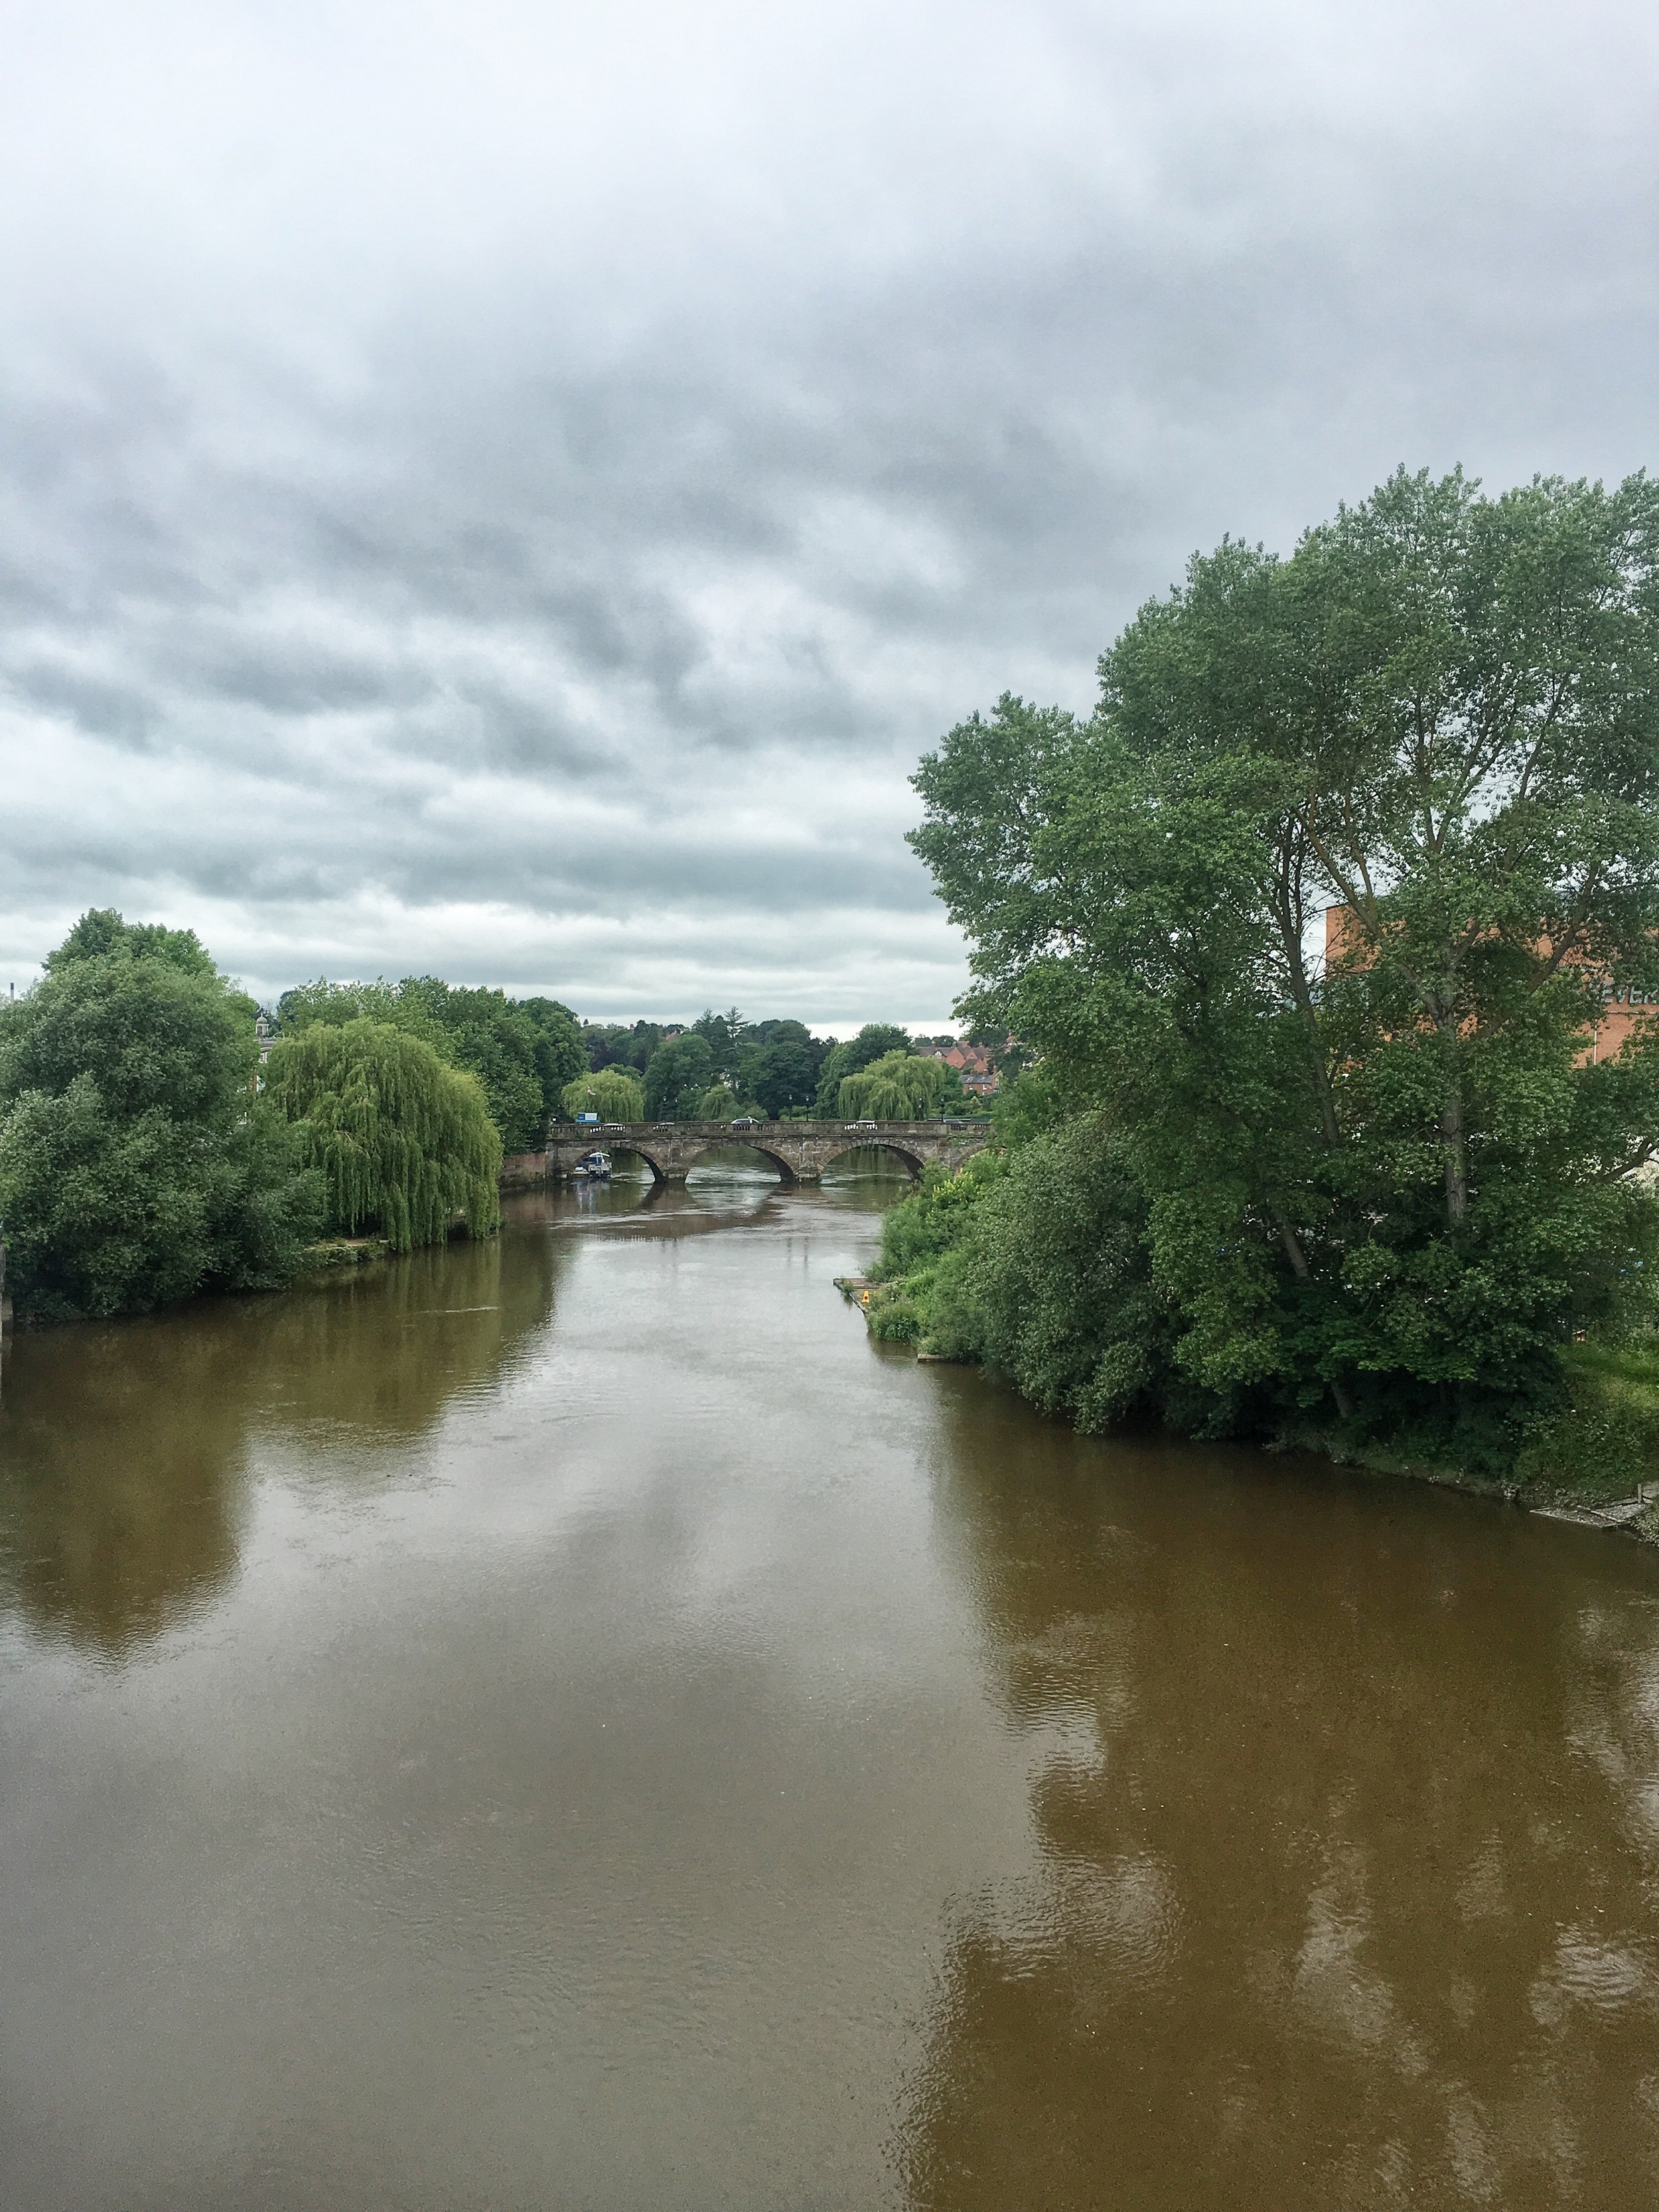 The Severn surrounds the town on three sides - and looked particularly silty [aka mucky] today.